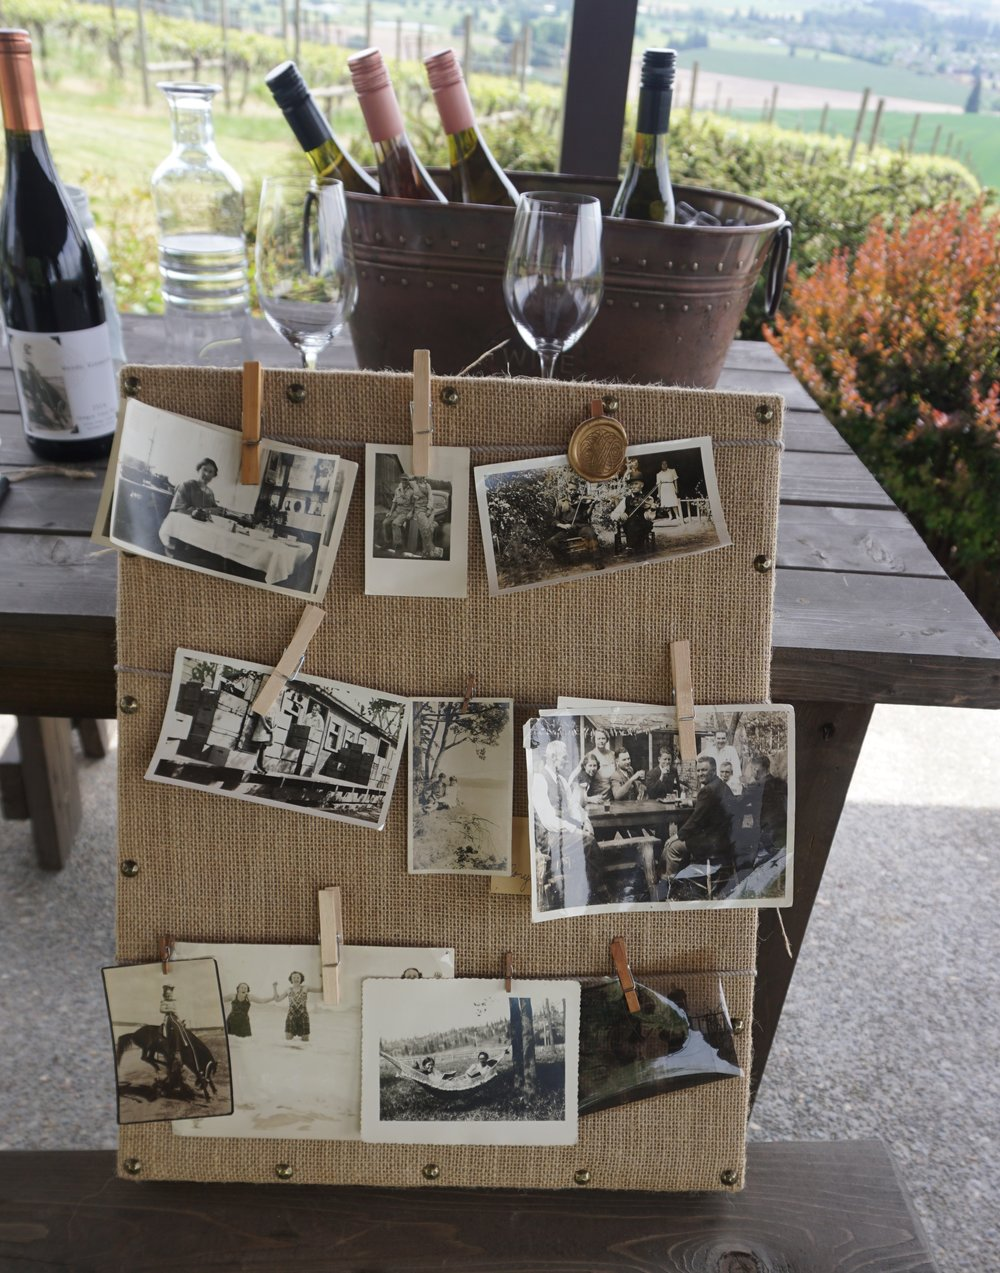 Woven Wineworks in Banks, Oregon has built their brand on 12 meticulously-labeled family photos that date back to the 1930's. Dan Eierdam